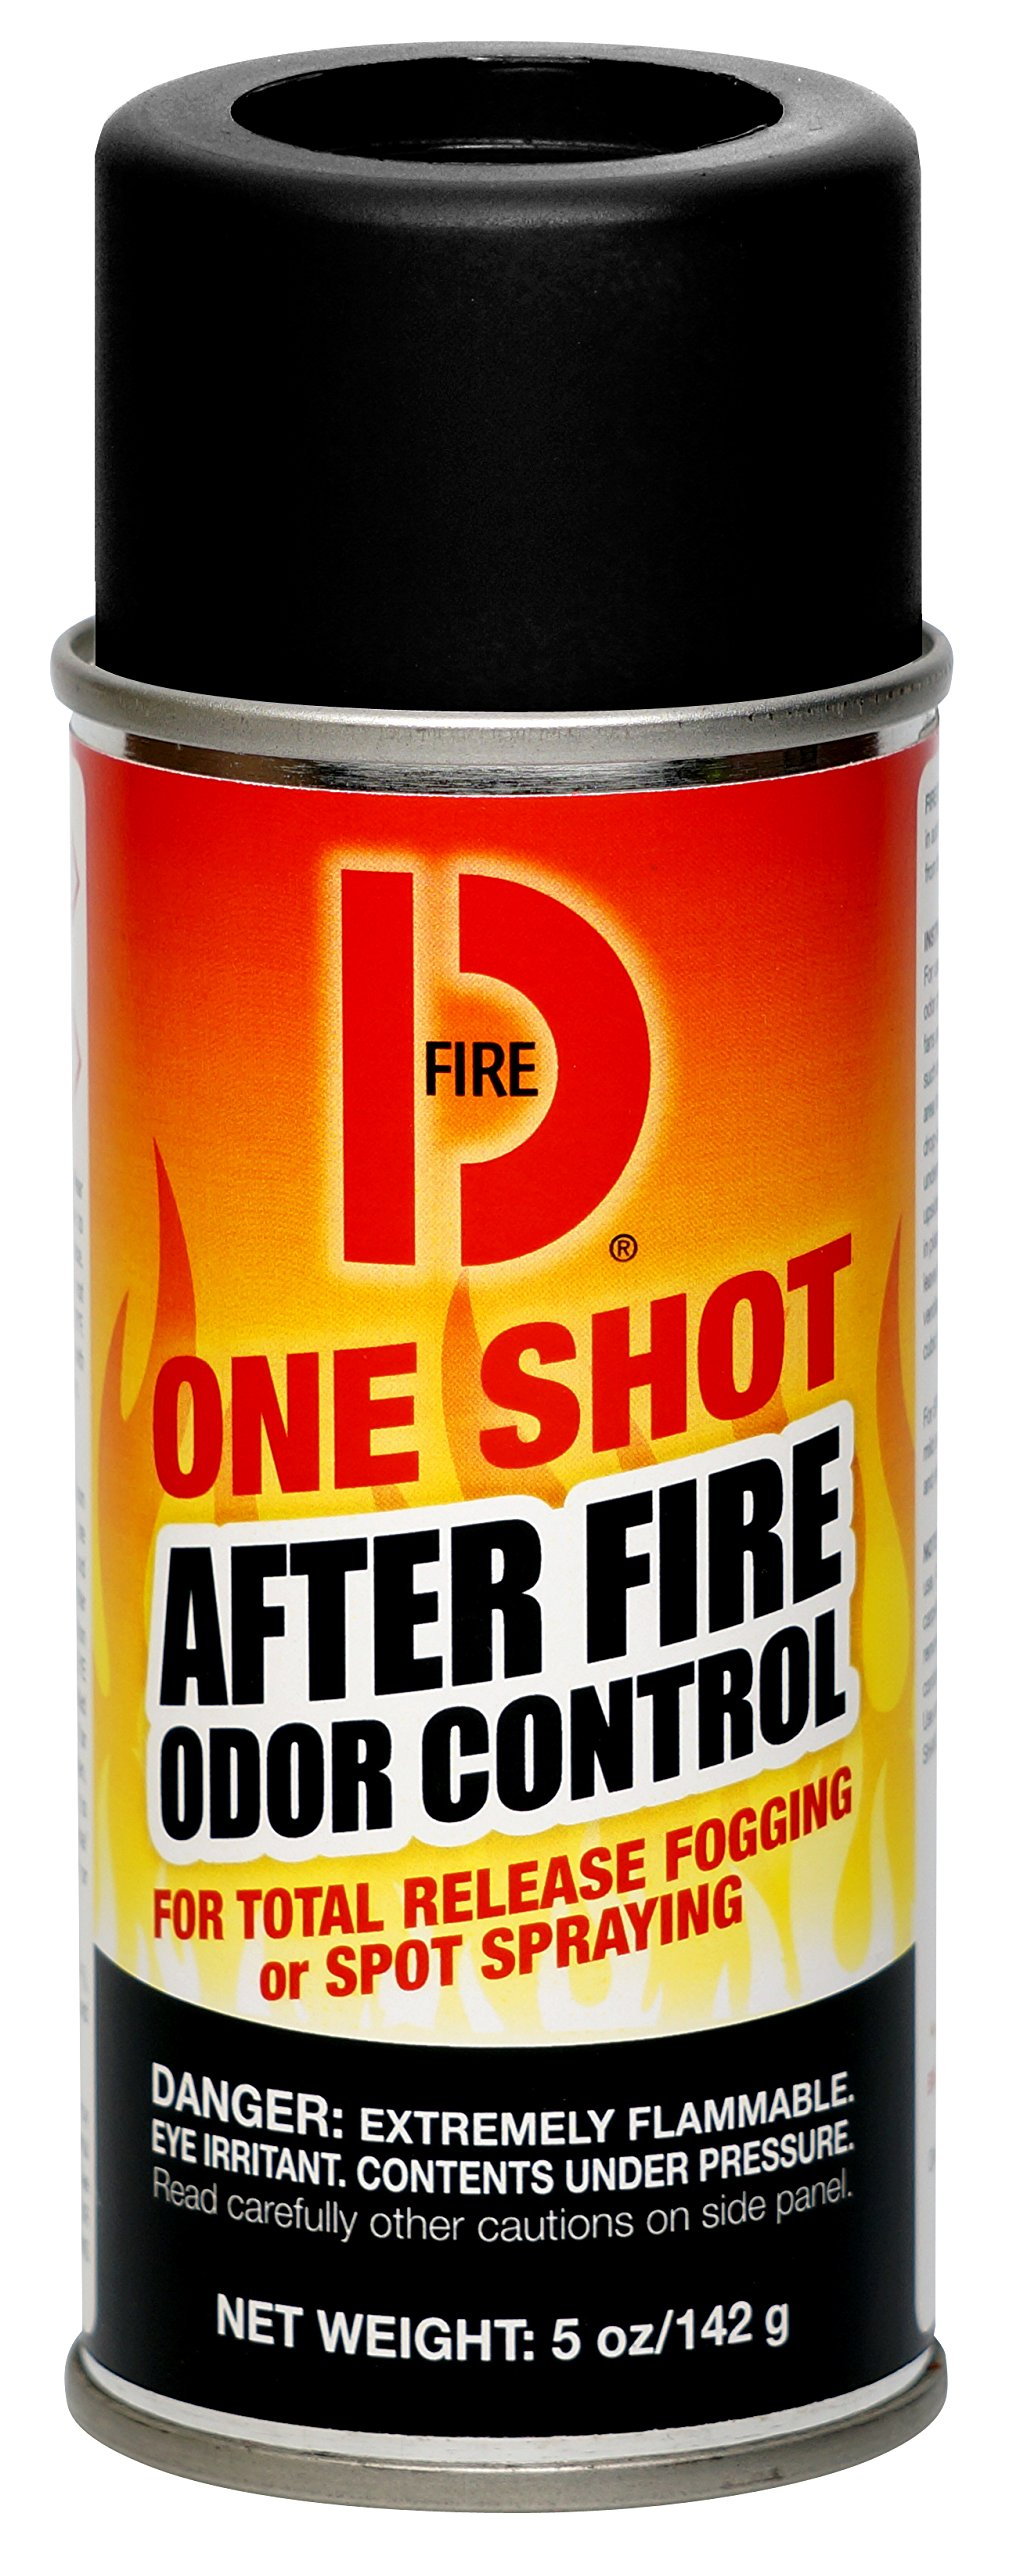 Big D 202 Fire D One Shot After Fire Odor Control Fogger, 5 oz (Pack of 12) - Kills odors from fire, flood, decomposition, cigarettes, musty smells - Ideal for use in cars, property management, hotels